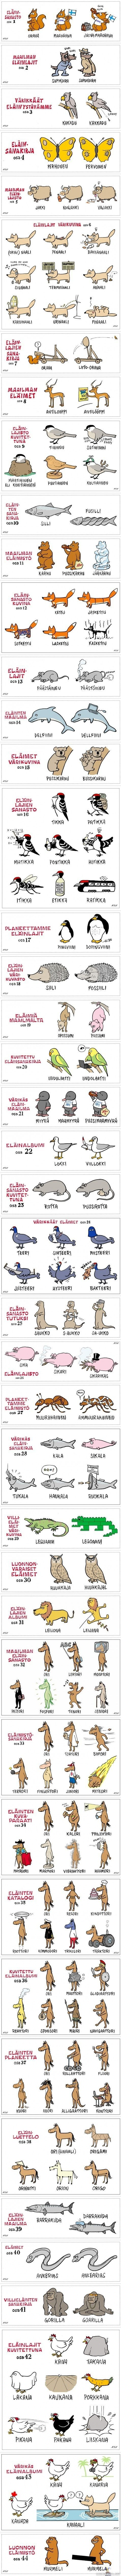 Torkean hilpea elainsanasto ;) - (This is only fun if you understand Finnish..)